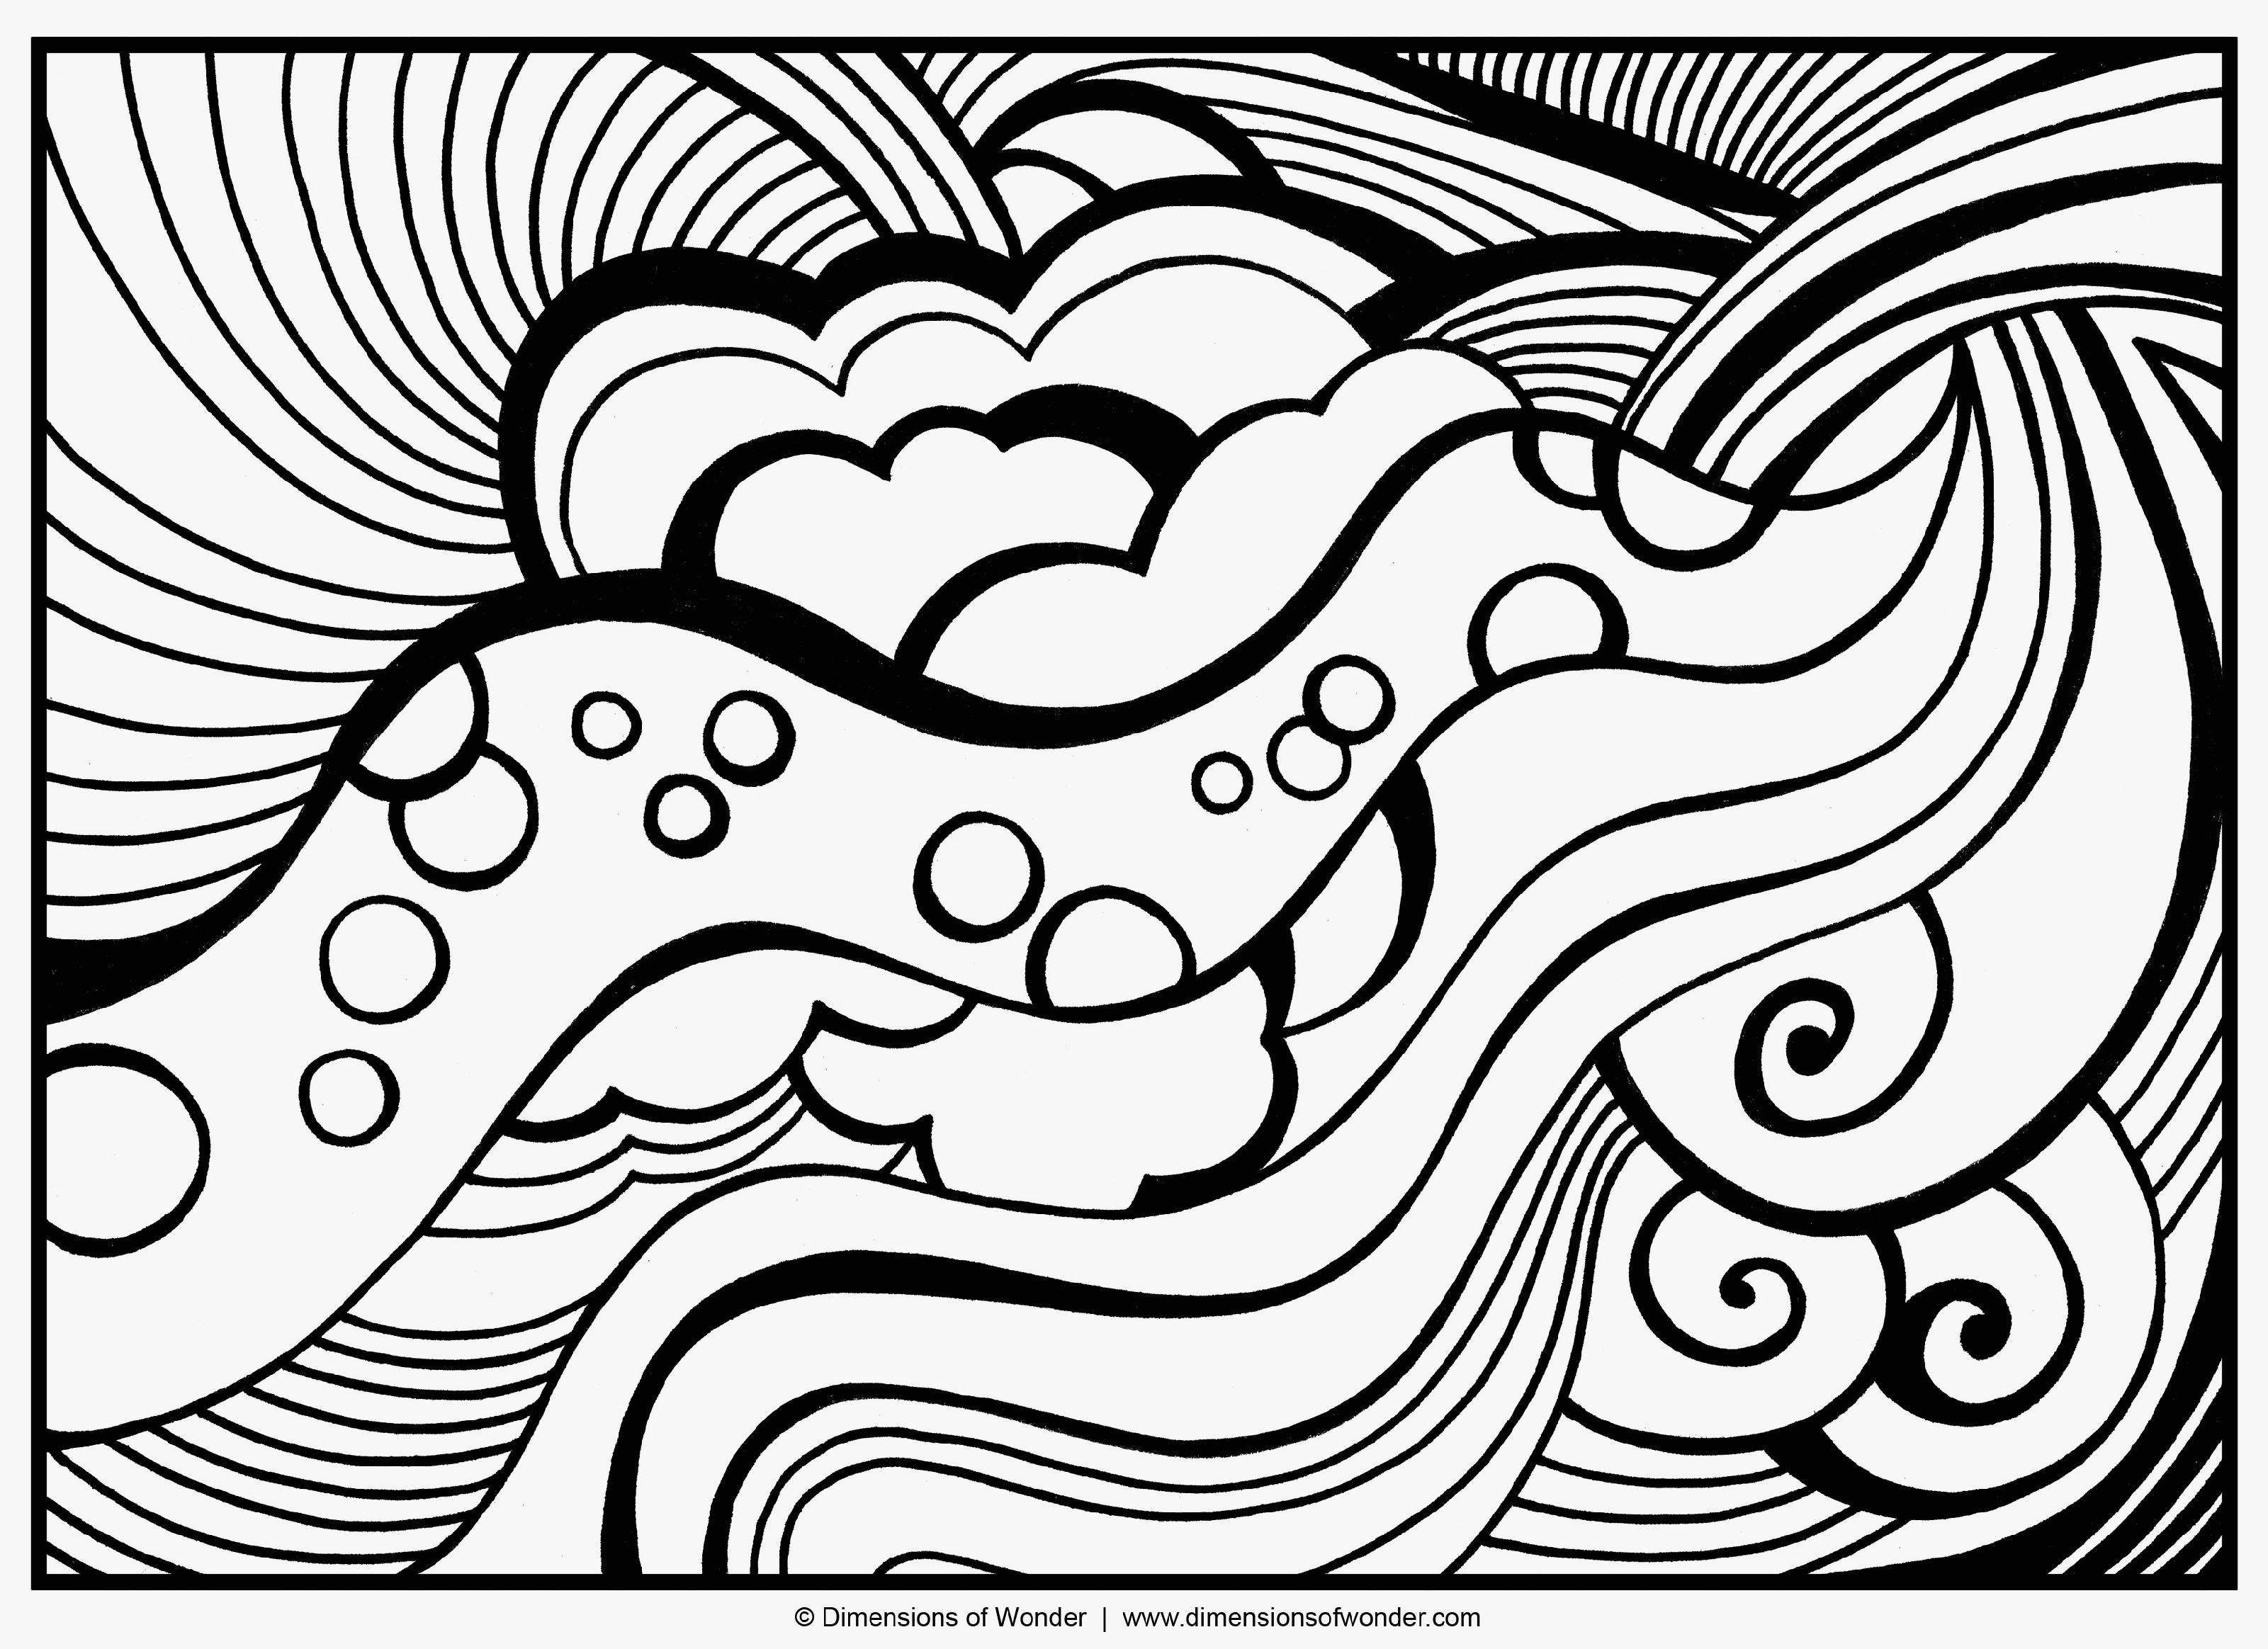 3201x2328 Hard Coloring Pages For Teenagers, Printable Coloring Pages